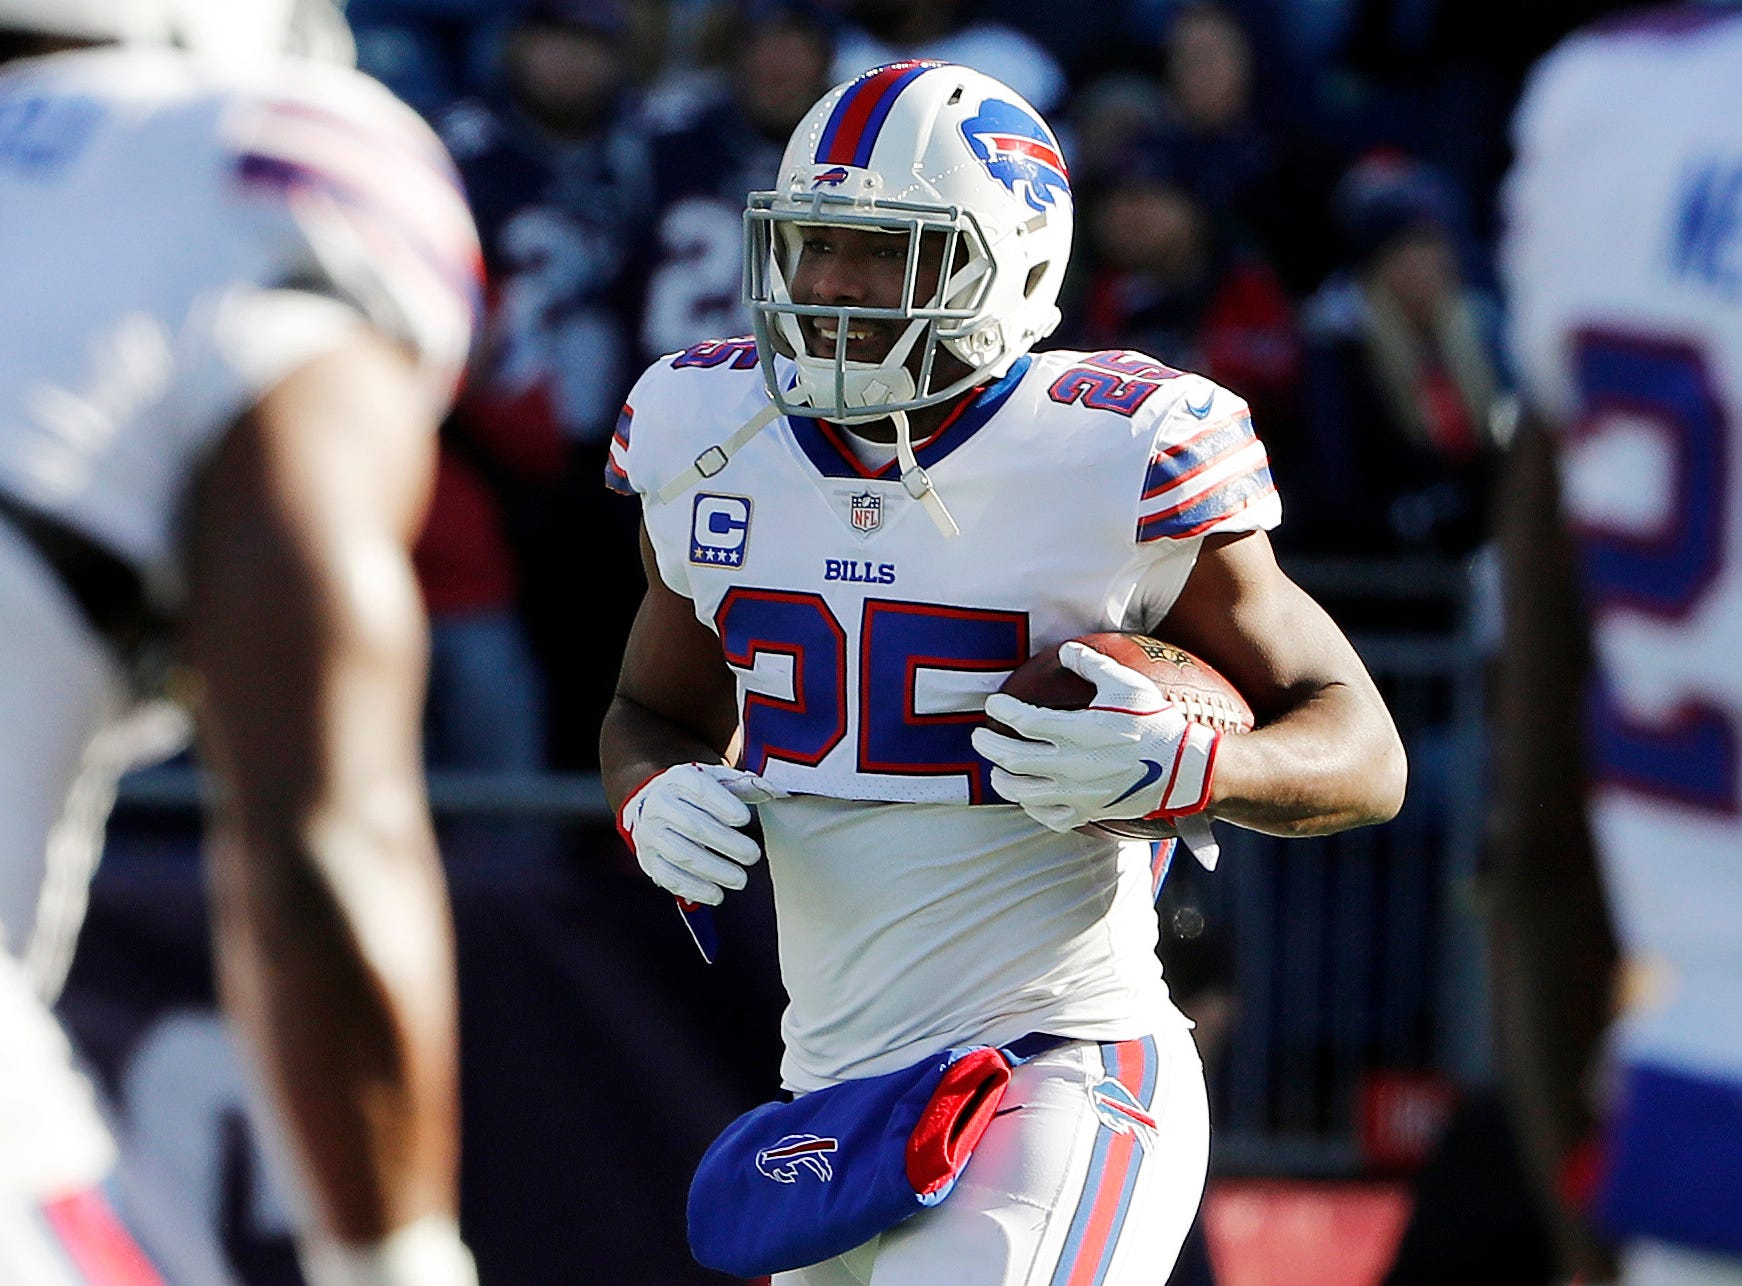 Dec 23, 2018; Foxborough, MA, USA; Buffalo Bills running back LeSean McCoy (25) carries the ball before their game against the New England Patriots at Gillette Stadium. Mandatory Credit: Winslow Townson-USA TODAY Sports